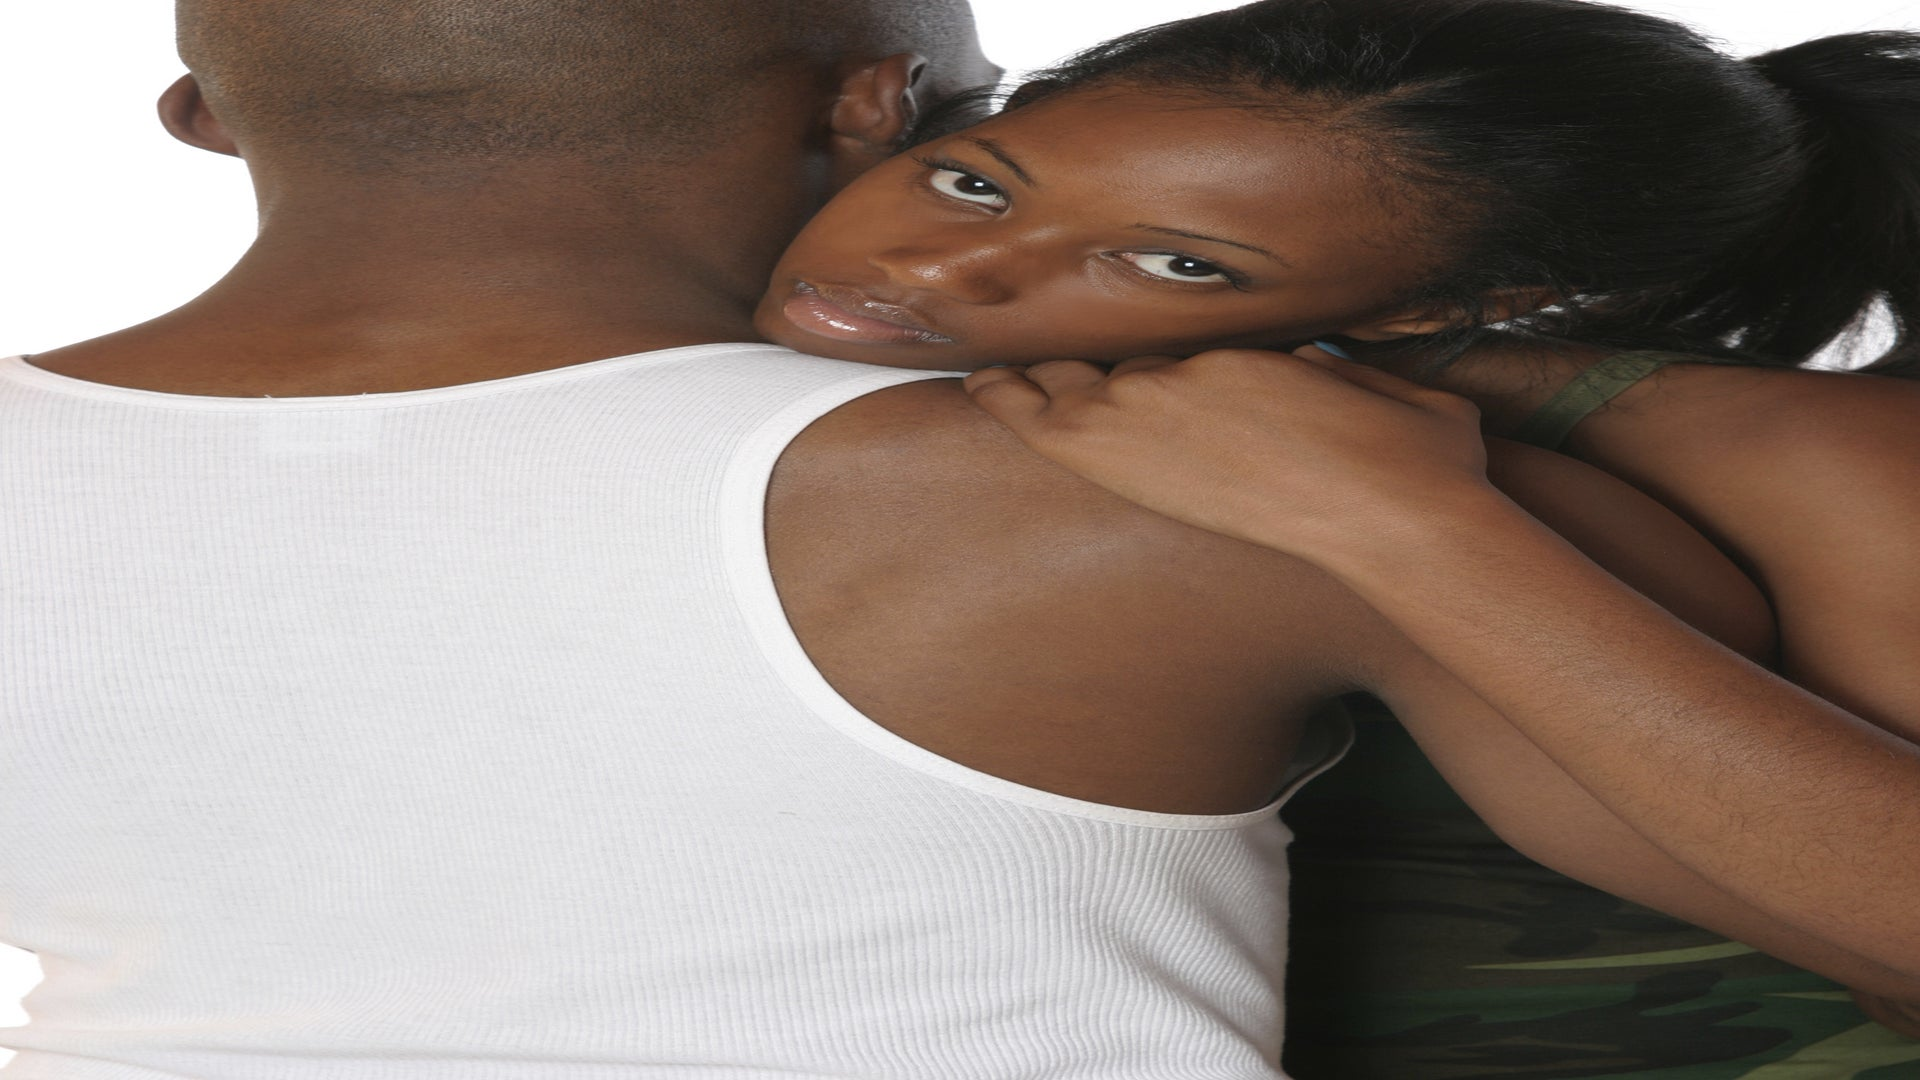 The 6 Most Overlooked Relationship Red Flags